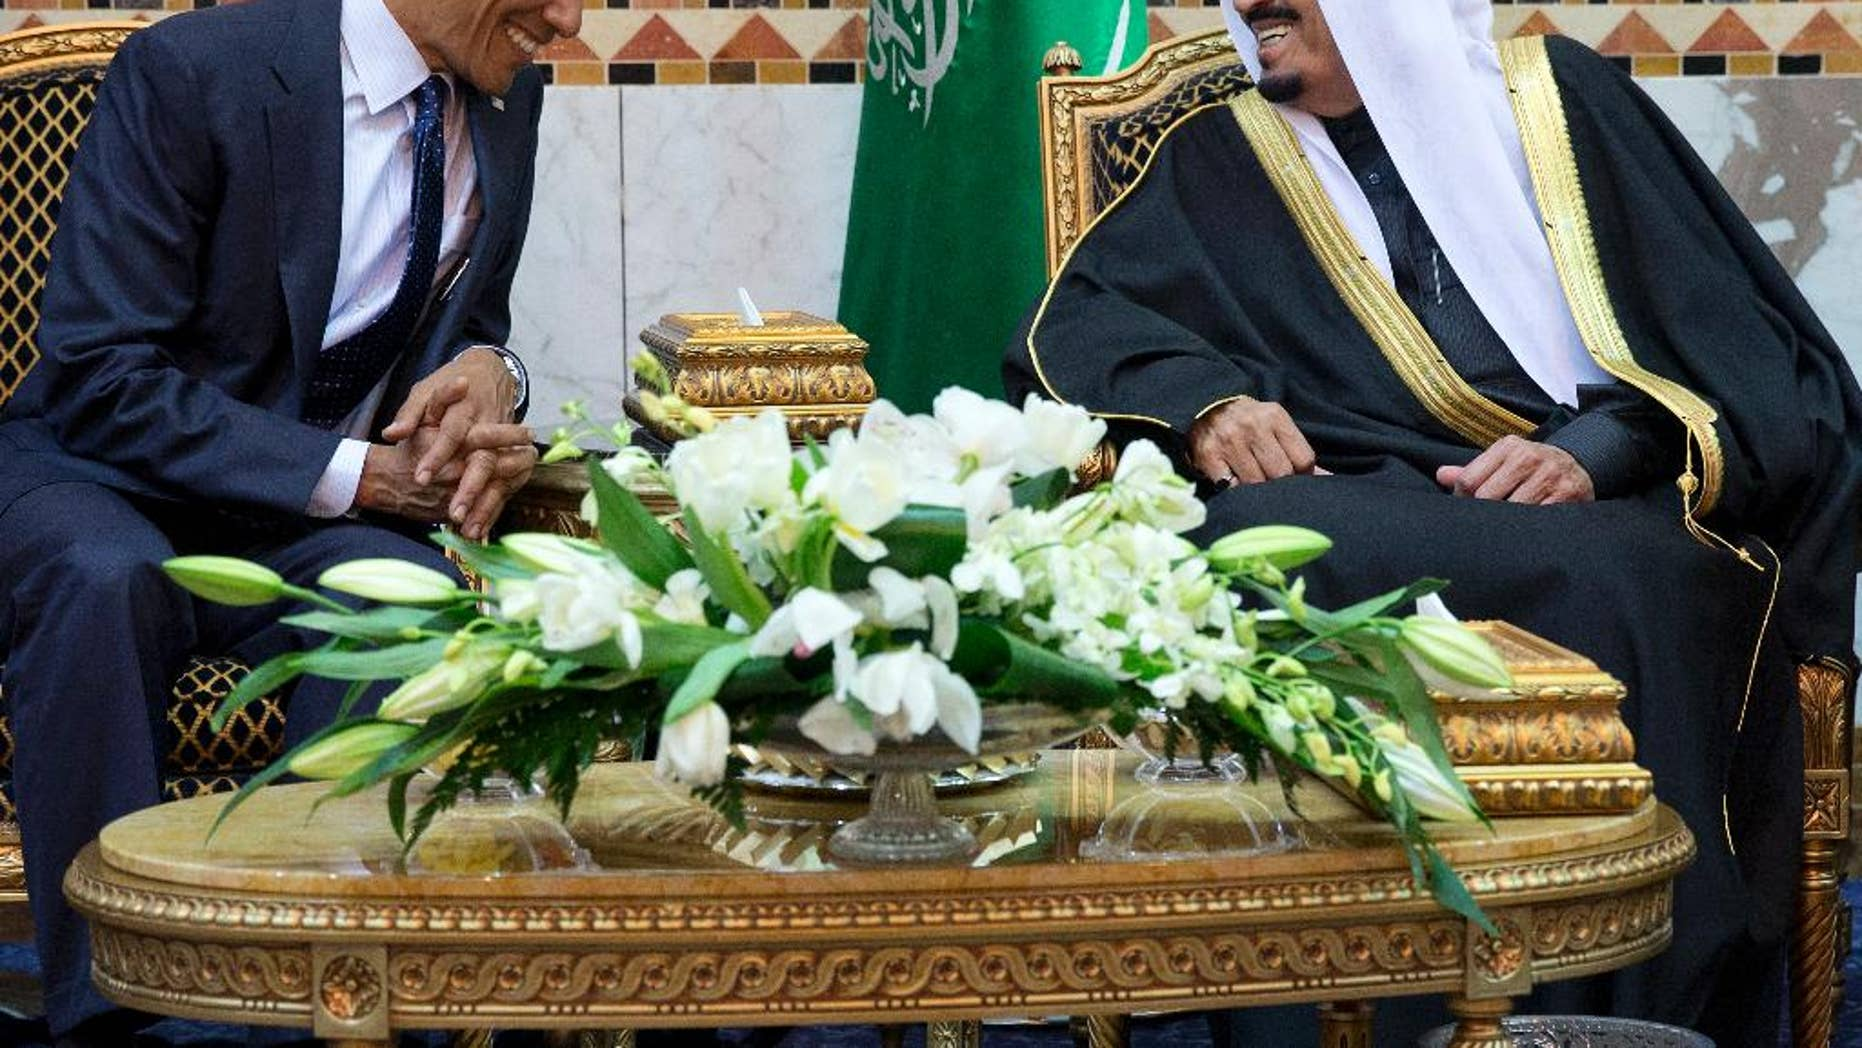 FILE - In this Jan. 27, 2015 file photo, President Barack Obama meets Saudi Arabian King Salman in Riyadh, Saudi Arabia. The Obama administration is greeting King Salman of Saudi Arabia with assurances that a nuclear deal with Iran also comes with the necessary resources to help check its regional ambitions. (AP Photo/Carolyn Kaster, File)